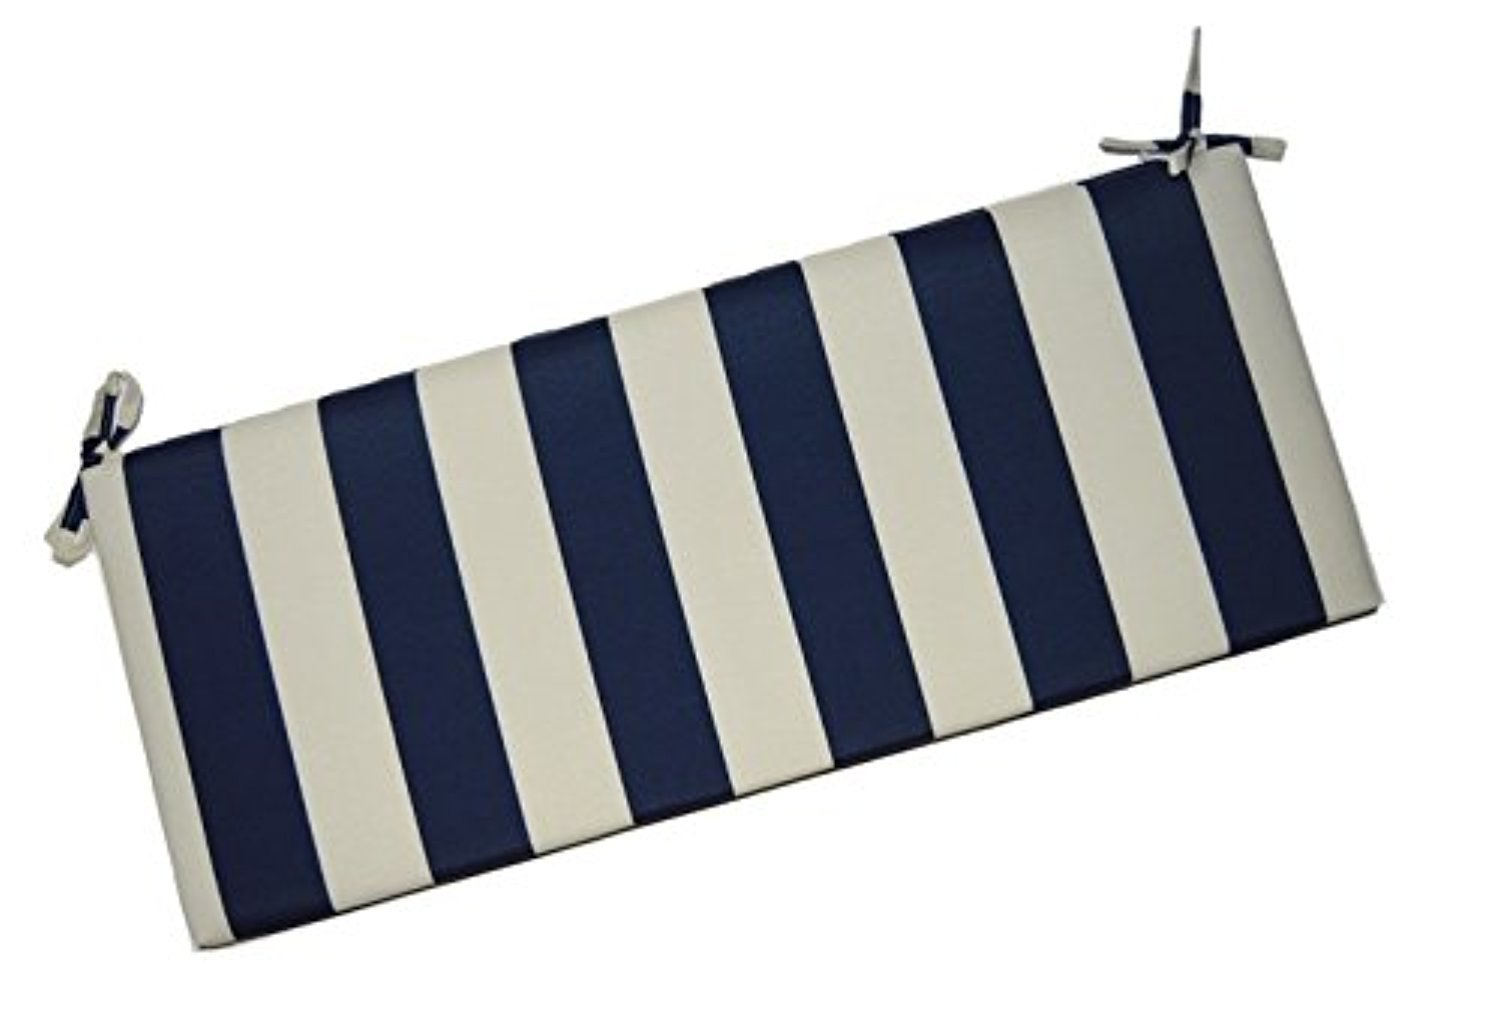 Resort Spa Home Decor Navy Blue and Ivory Stripe 2'' Thick Foam Swing/Bench/Glider Cushion with Ties and Zipper - Choose Size